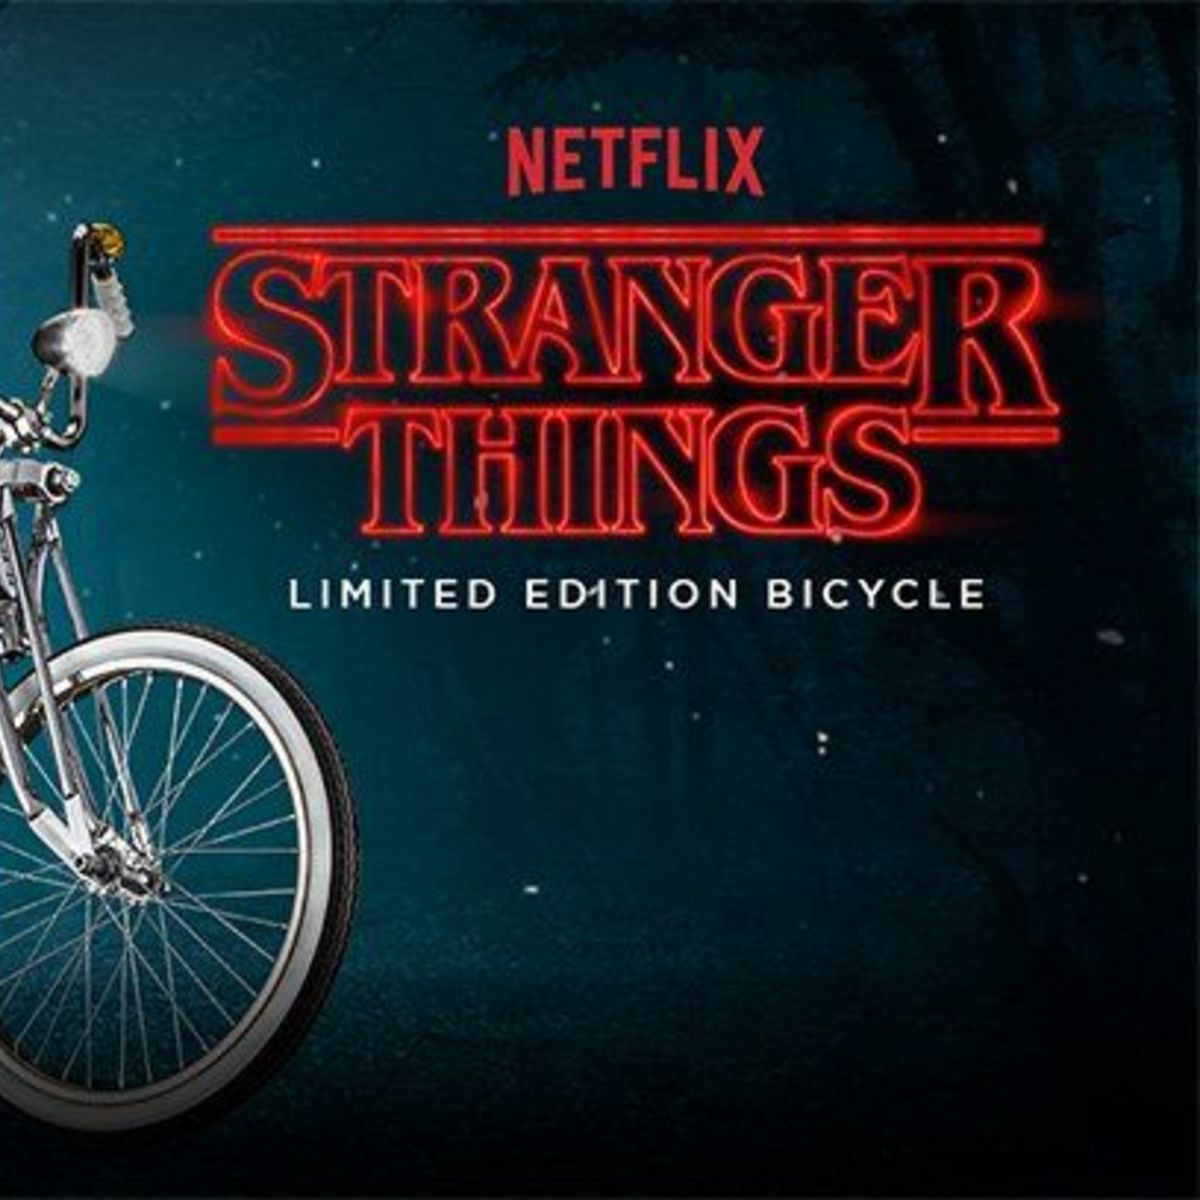 xs18_strangerthings-blog.jpg.pagespeed.ic_.je-idhg4ti-2